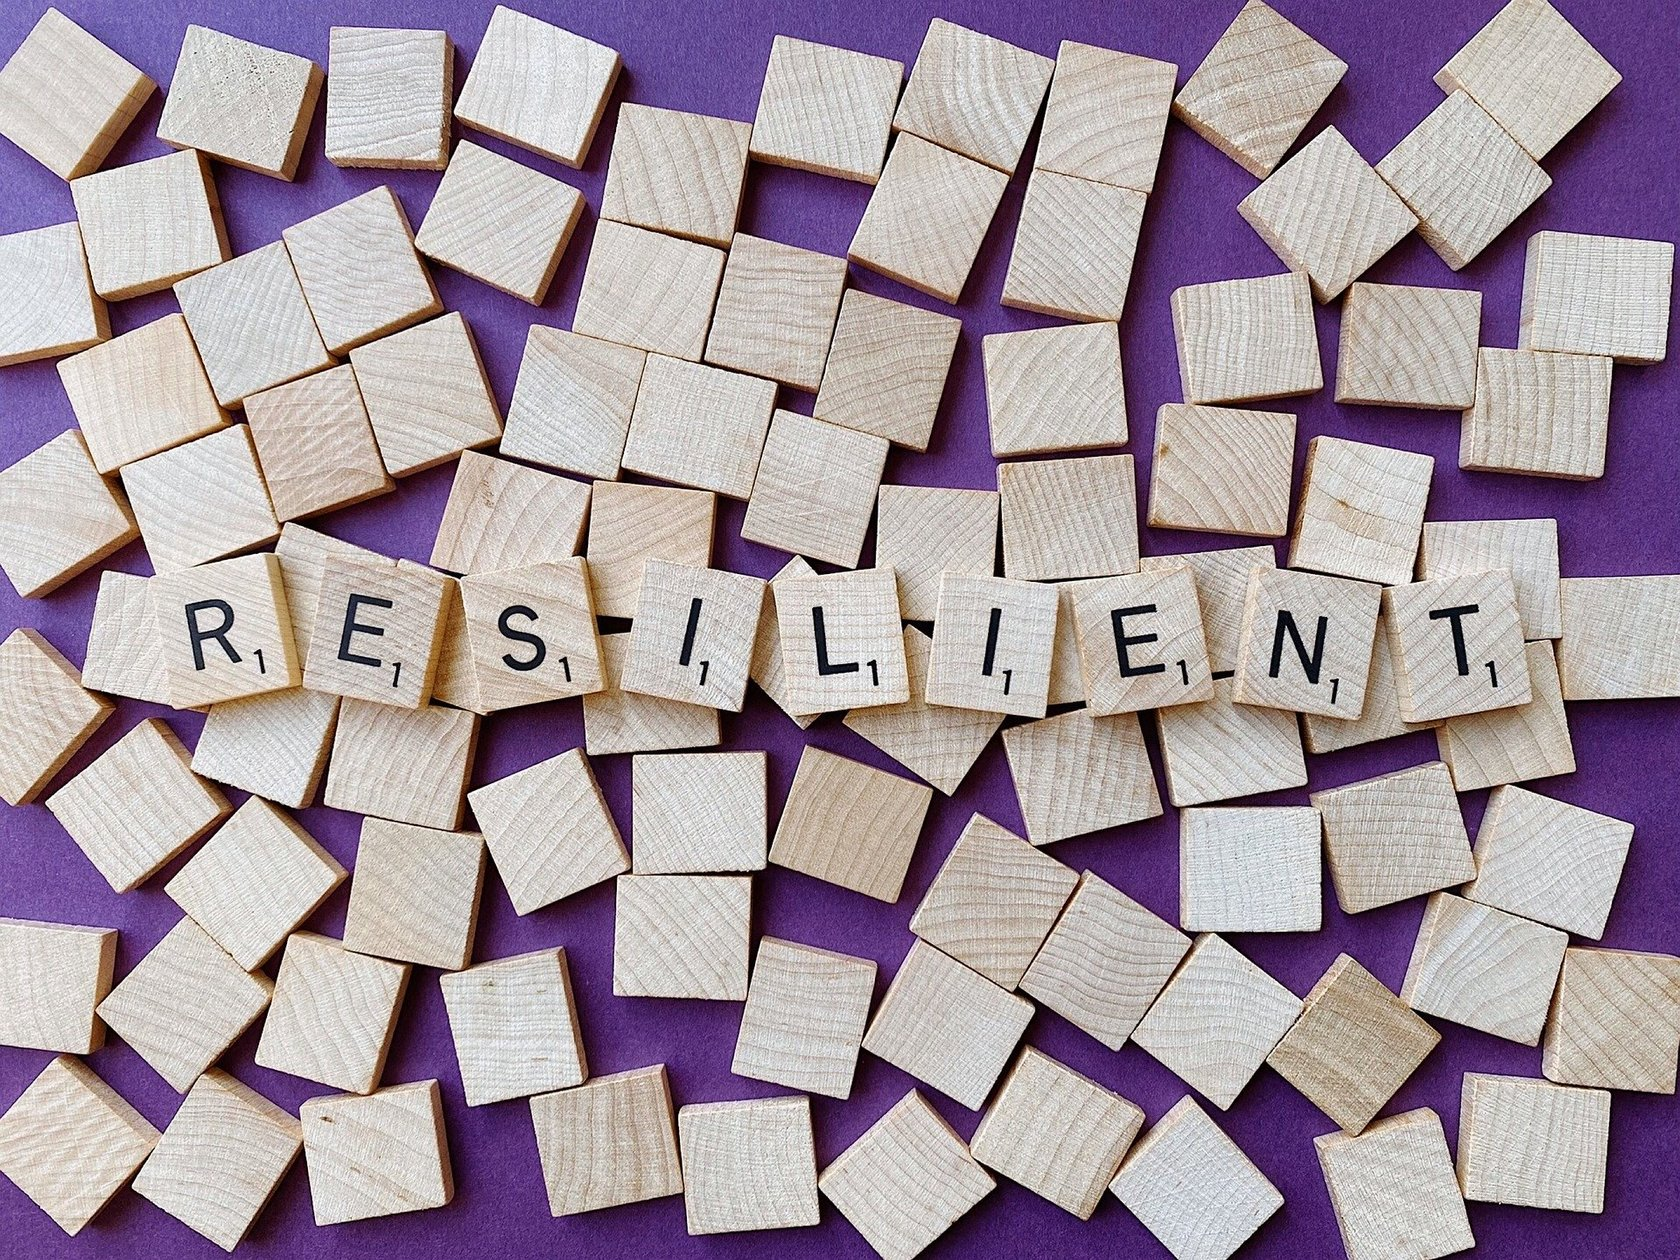 Resilience Resources Weekly: Social Networks